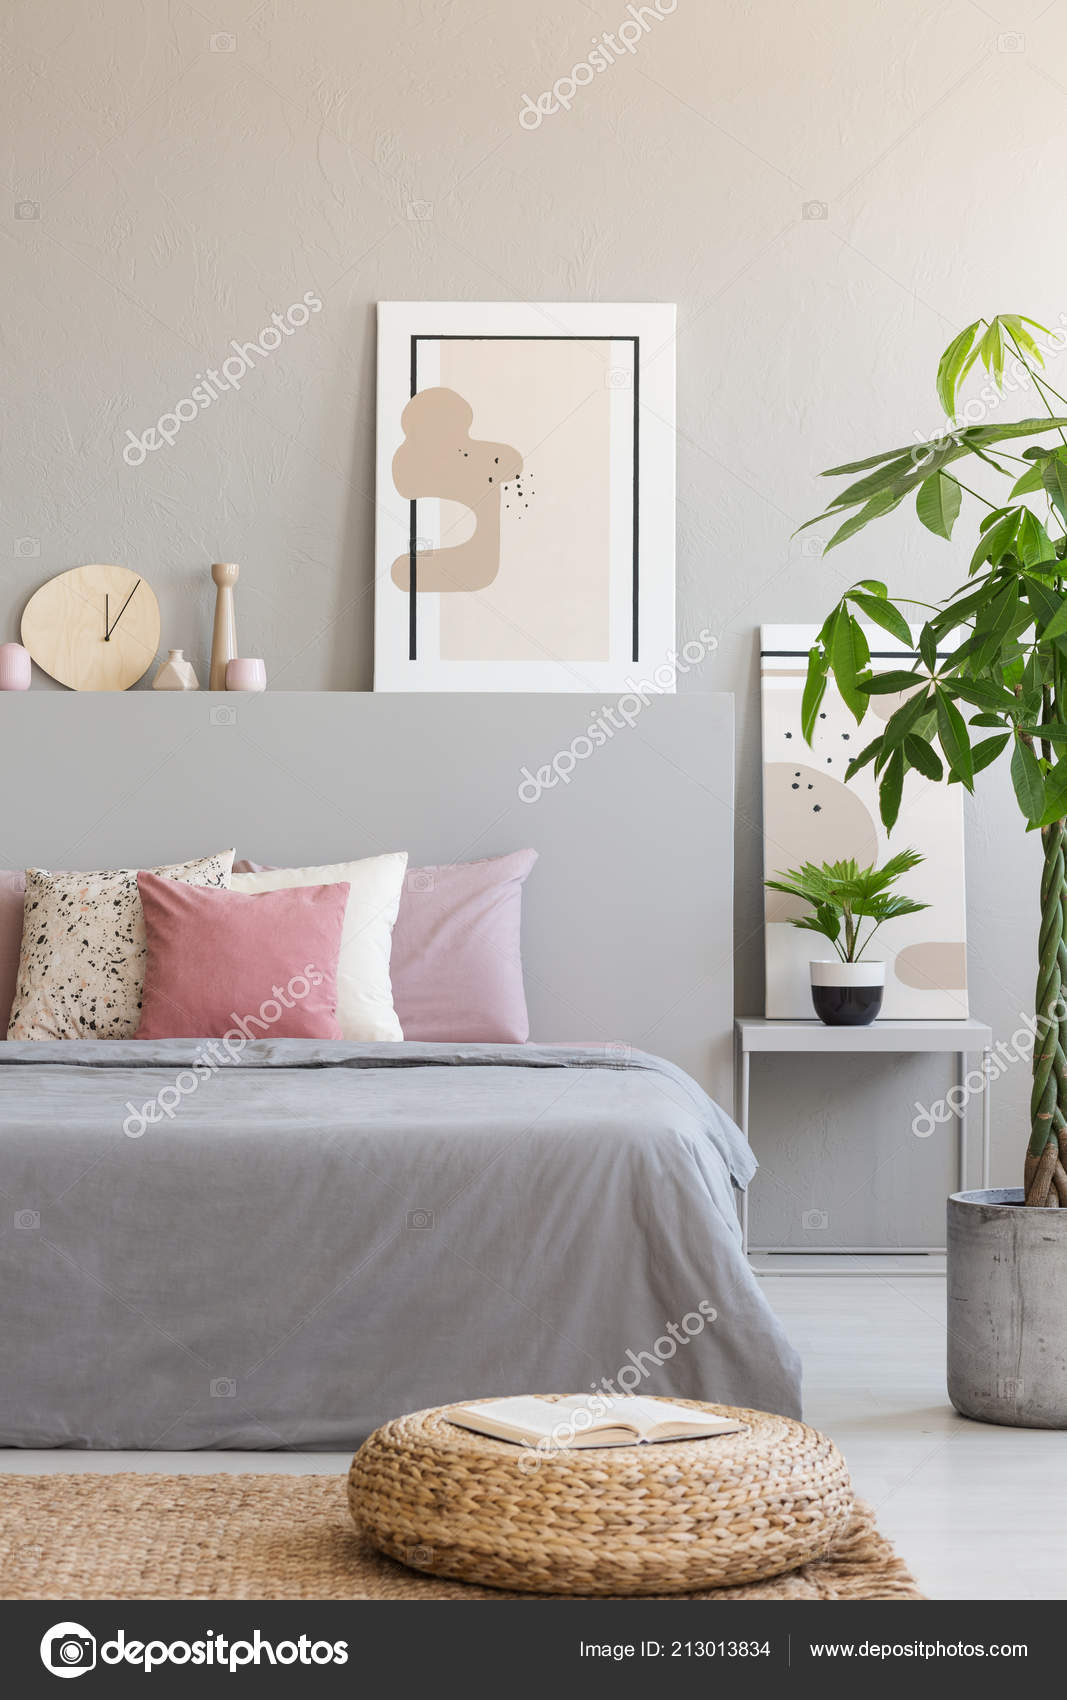 Pouf Plant Next Grey Bed Pink Cushions Bedroom Interior Poster ...